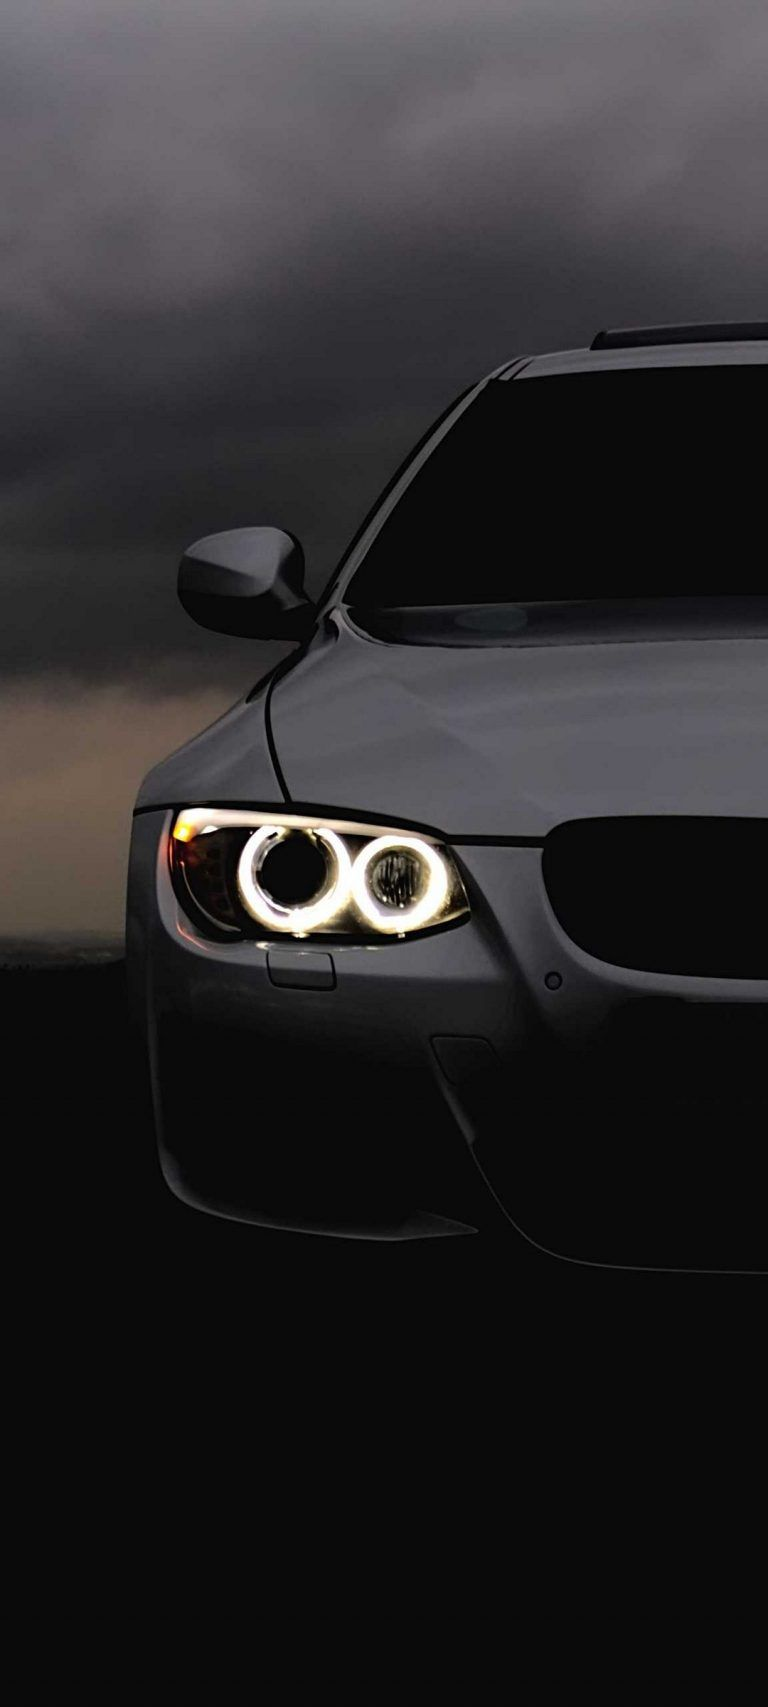 Bmw Headlights Car Wallpaper 1080 2400 In 2021 Car Wallpapers Bmw Bmw Wallpapers